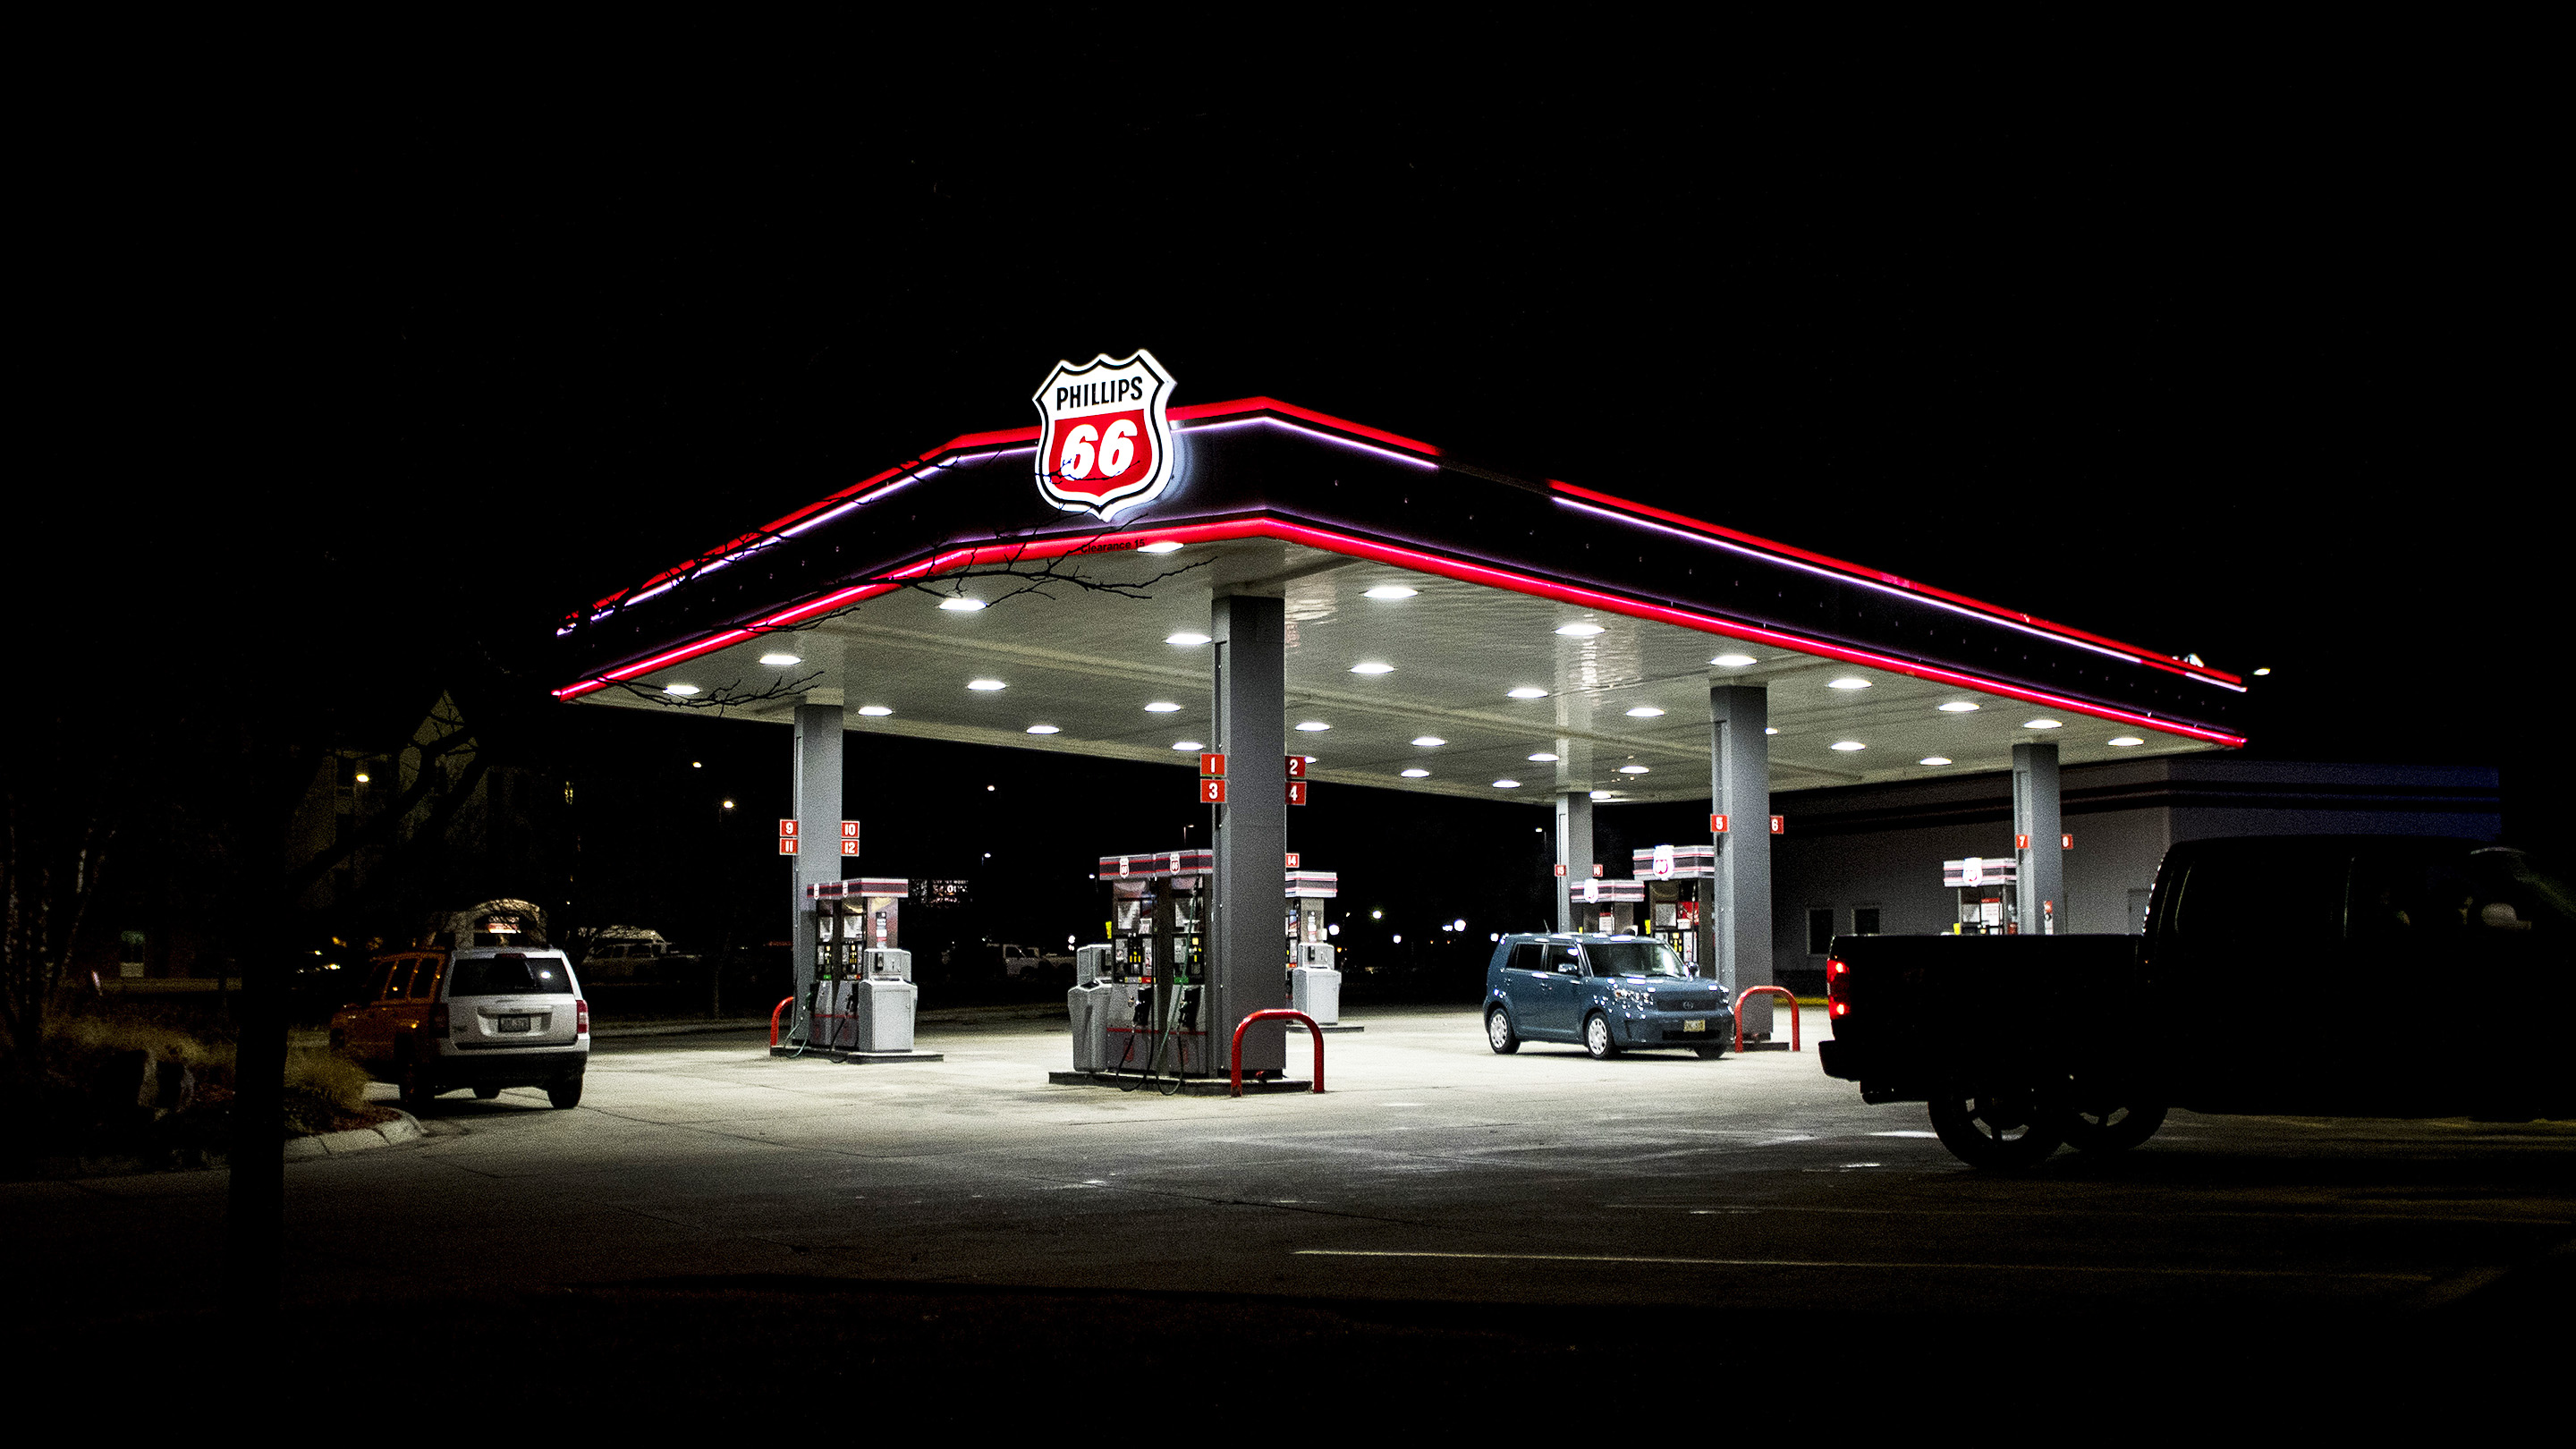 A Phillips 66 gas station stands illuminated at night in Omaha, Nebraska, U.S., on Sunday Jan. 29, 2017. Phillips 66 is scheduled to release earnings figures on February 3. Photographer: Christopher Dilts/Bloomberg via Getty Images